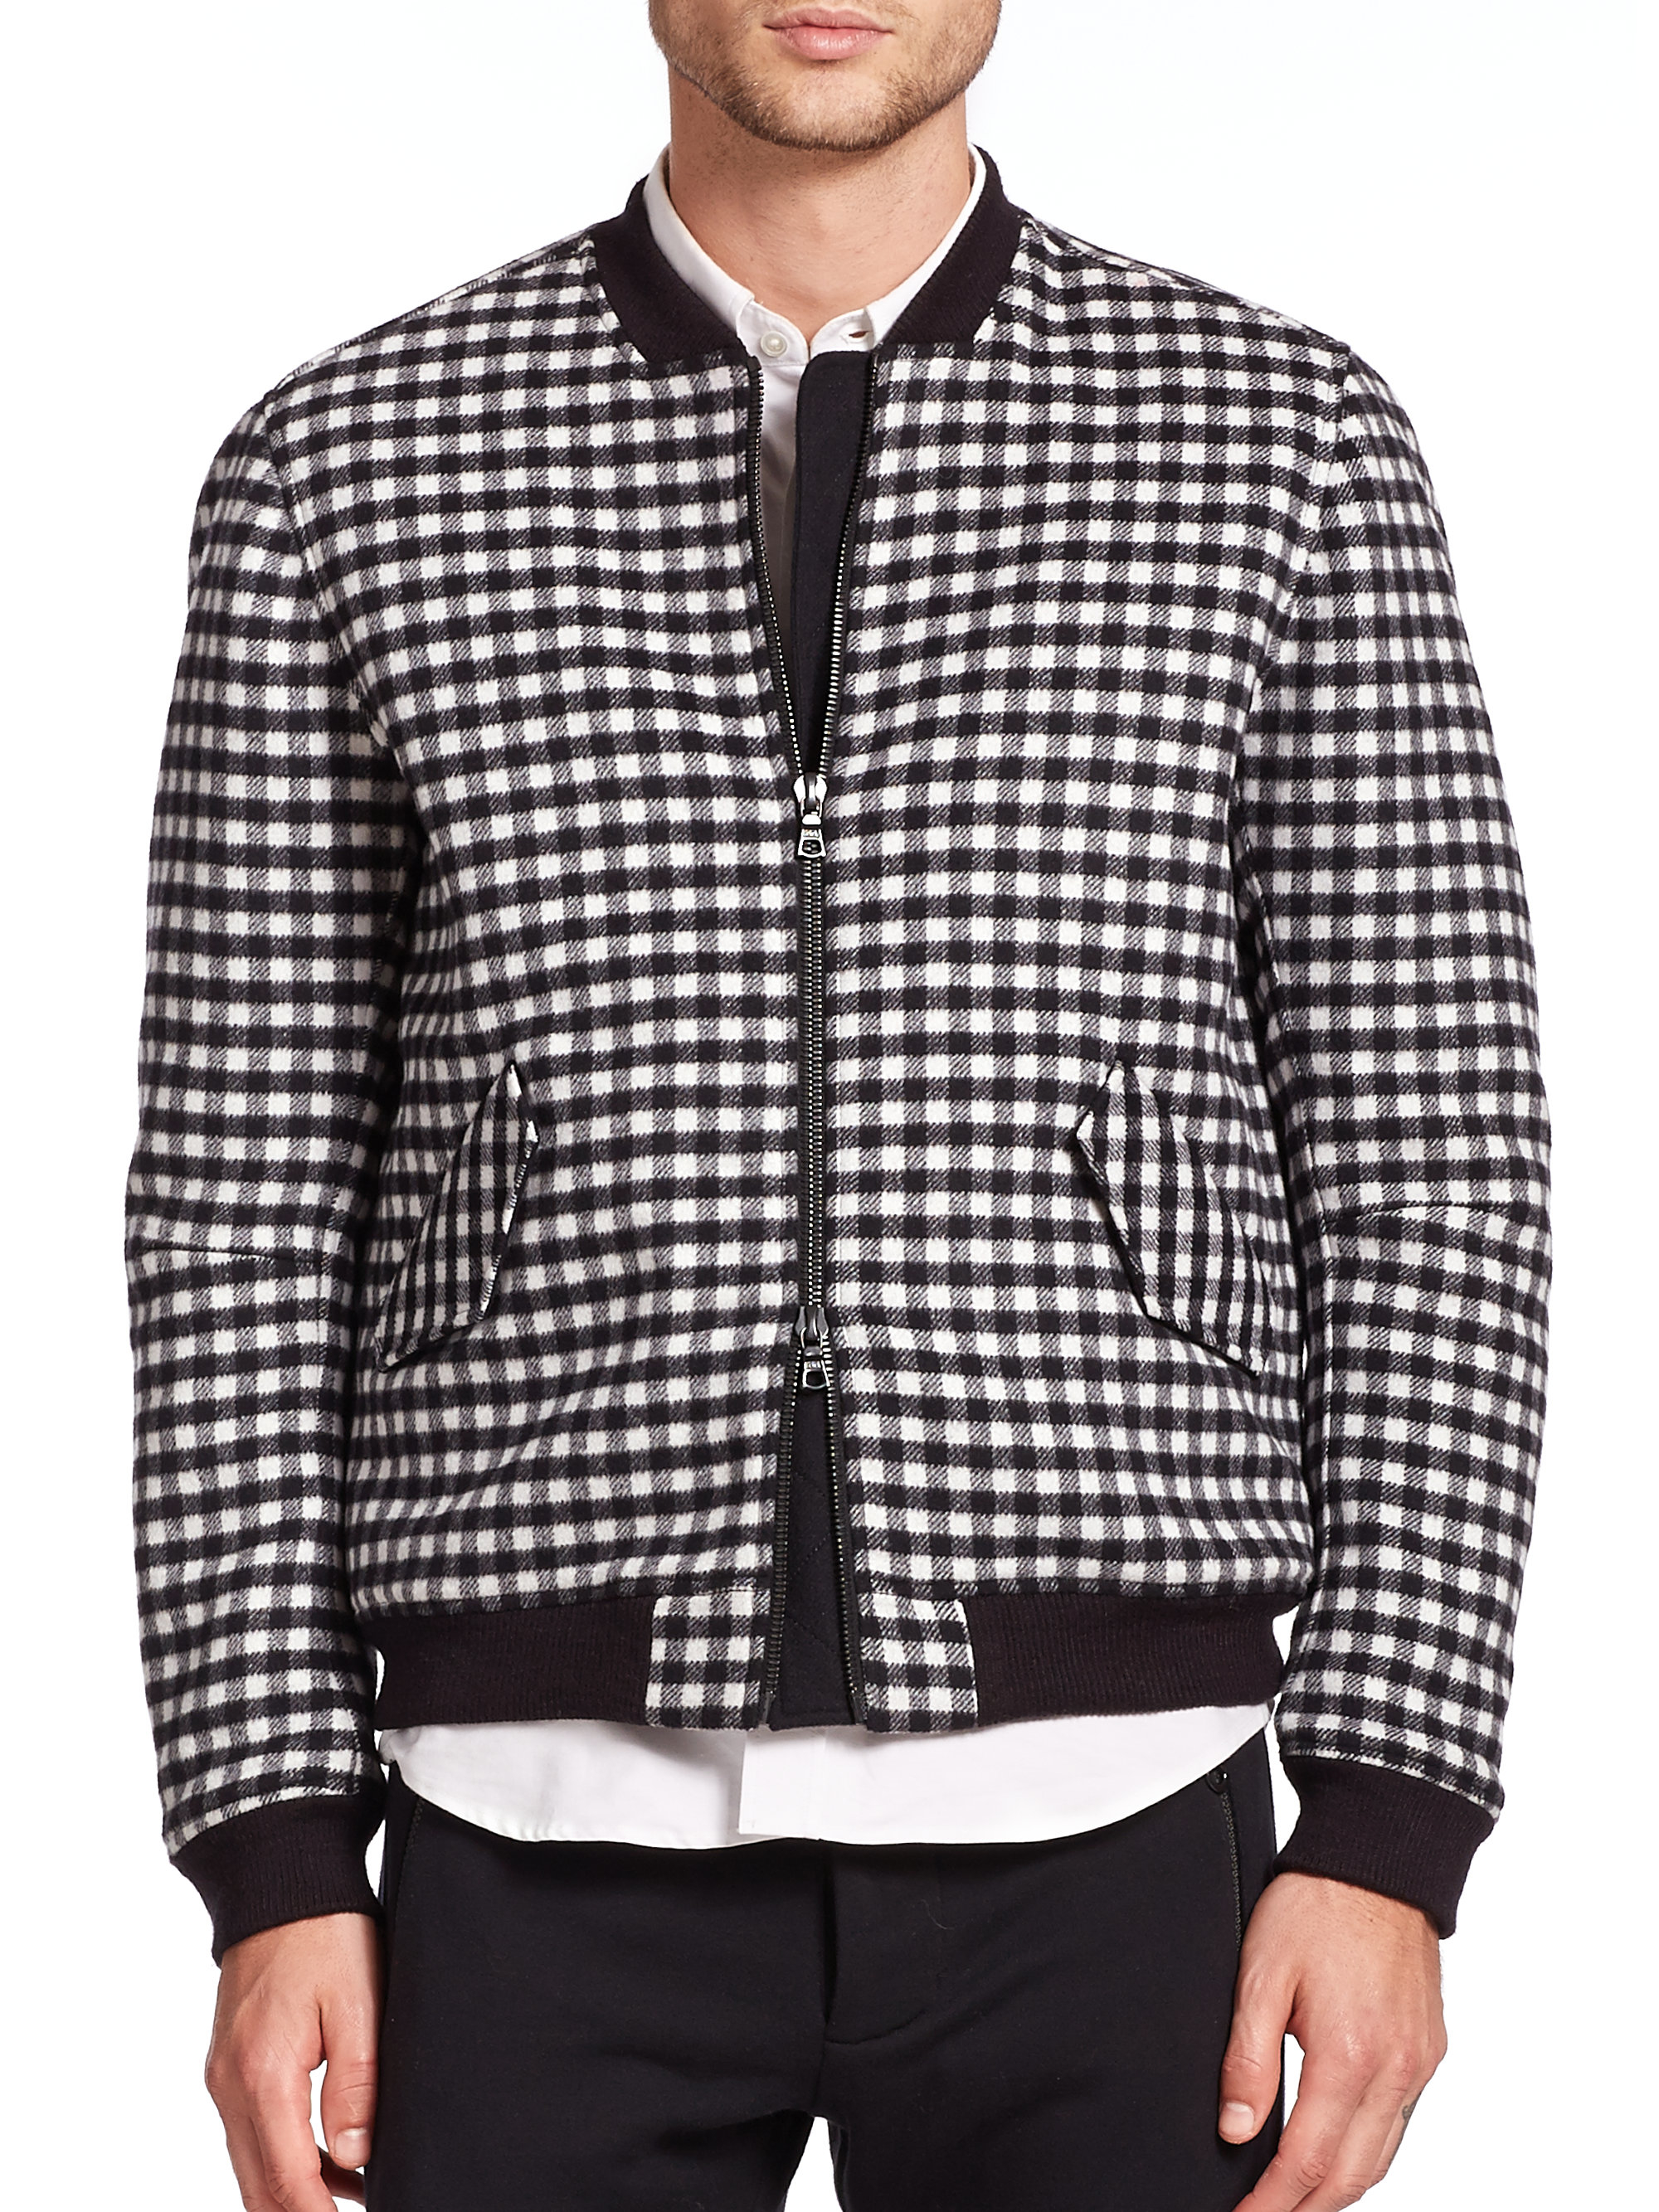 Black and white check jacket men's